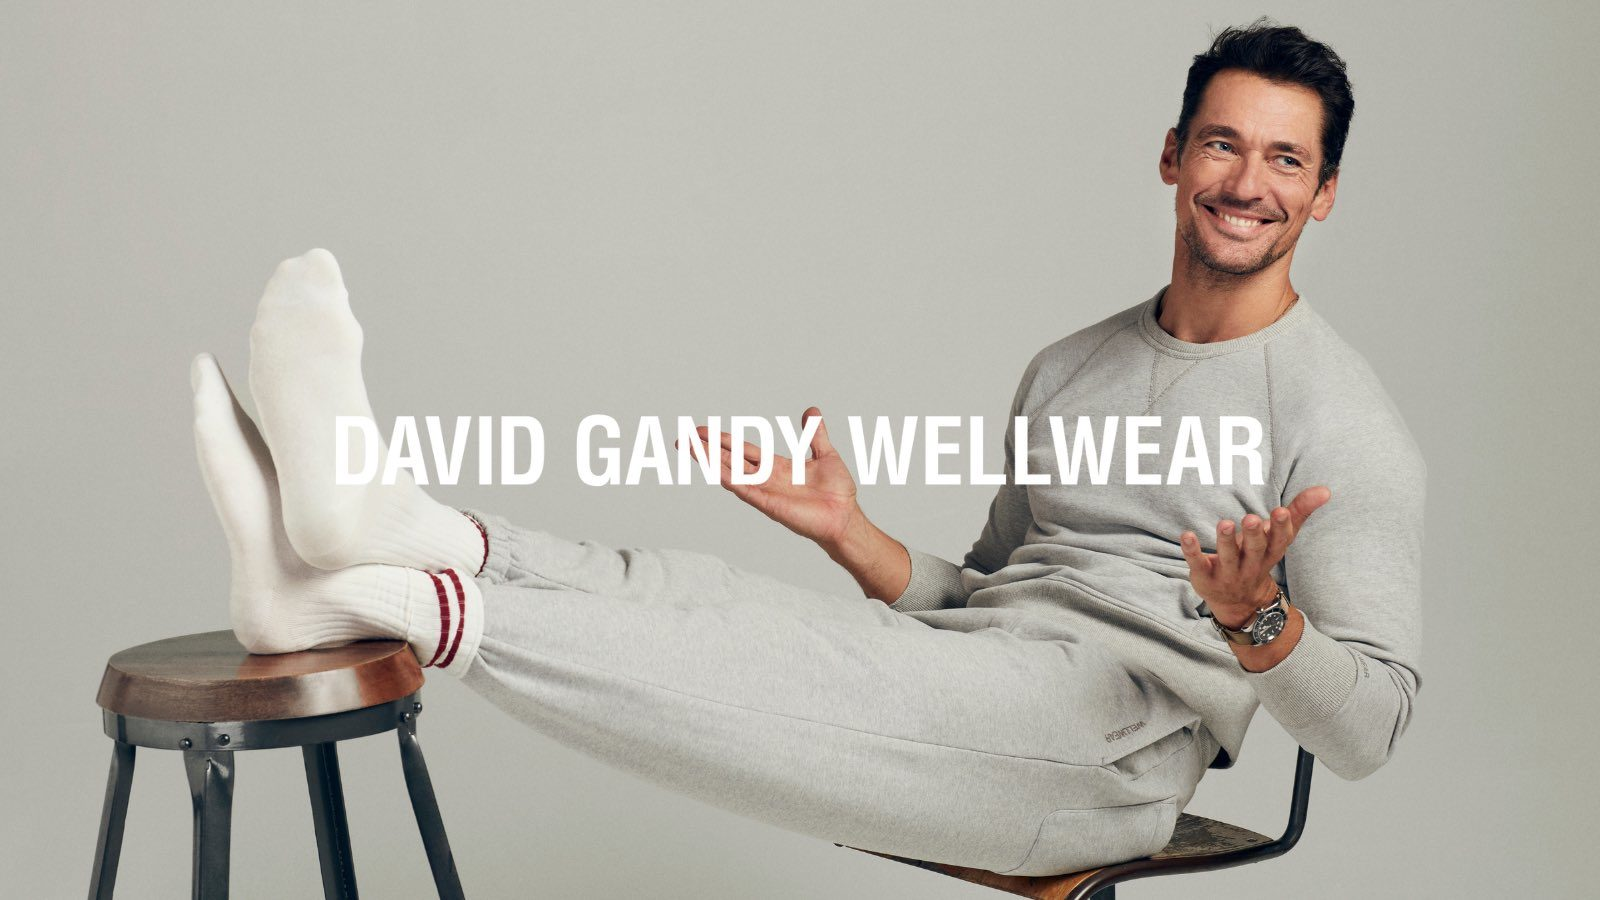 David Gandy Launches His Eponymous Fashion and Lifestyle Brand: David Gandy Wellwear